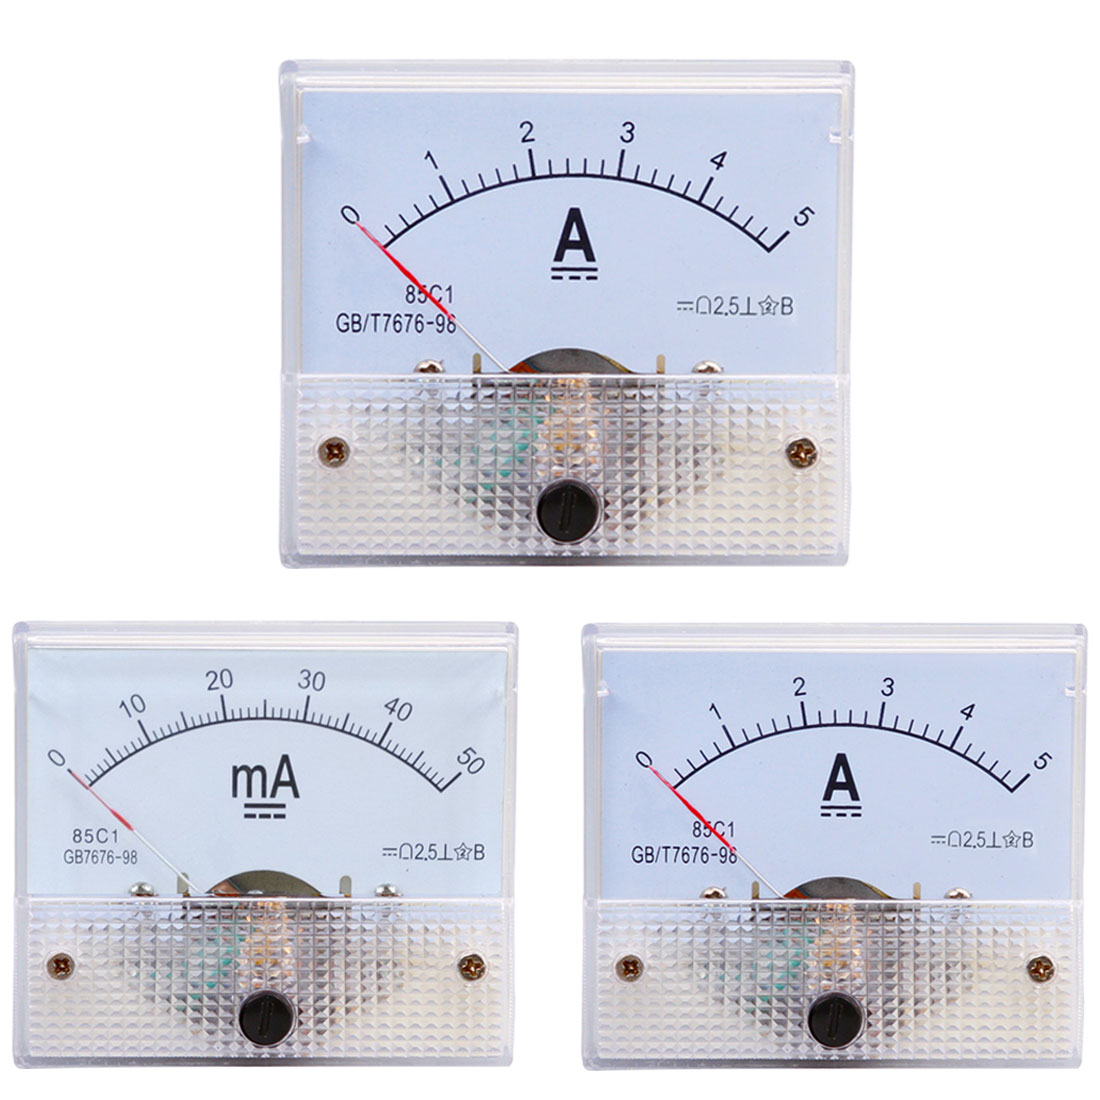 TOP DC Analog Current Meter Panel 5A 10A 15A 20A 30A 50A 100A Gauge Pointer Current Mechanical Ammeters